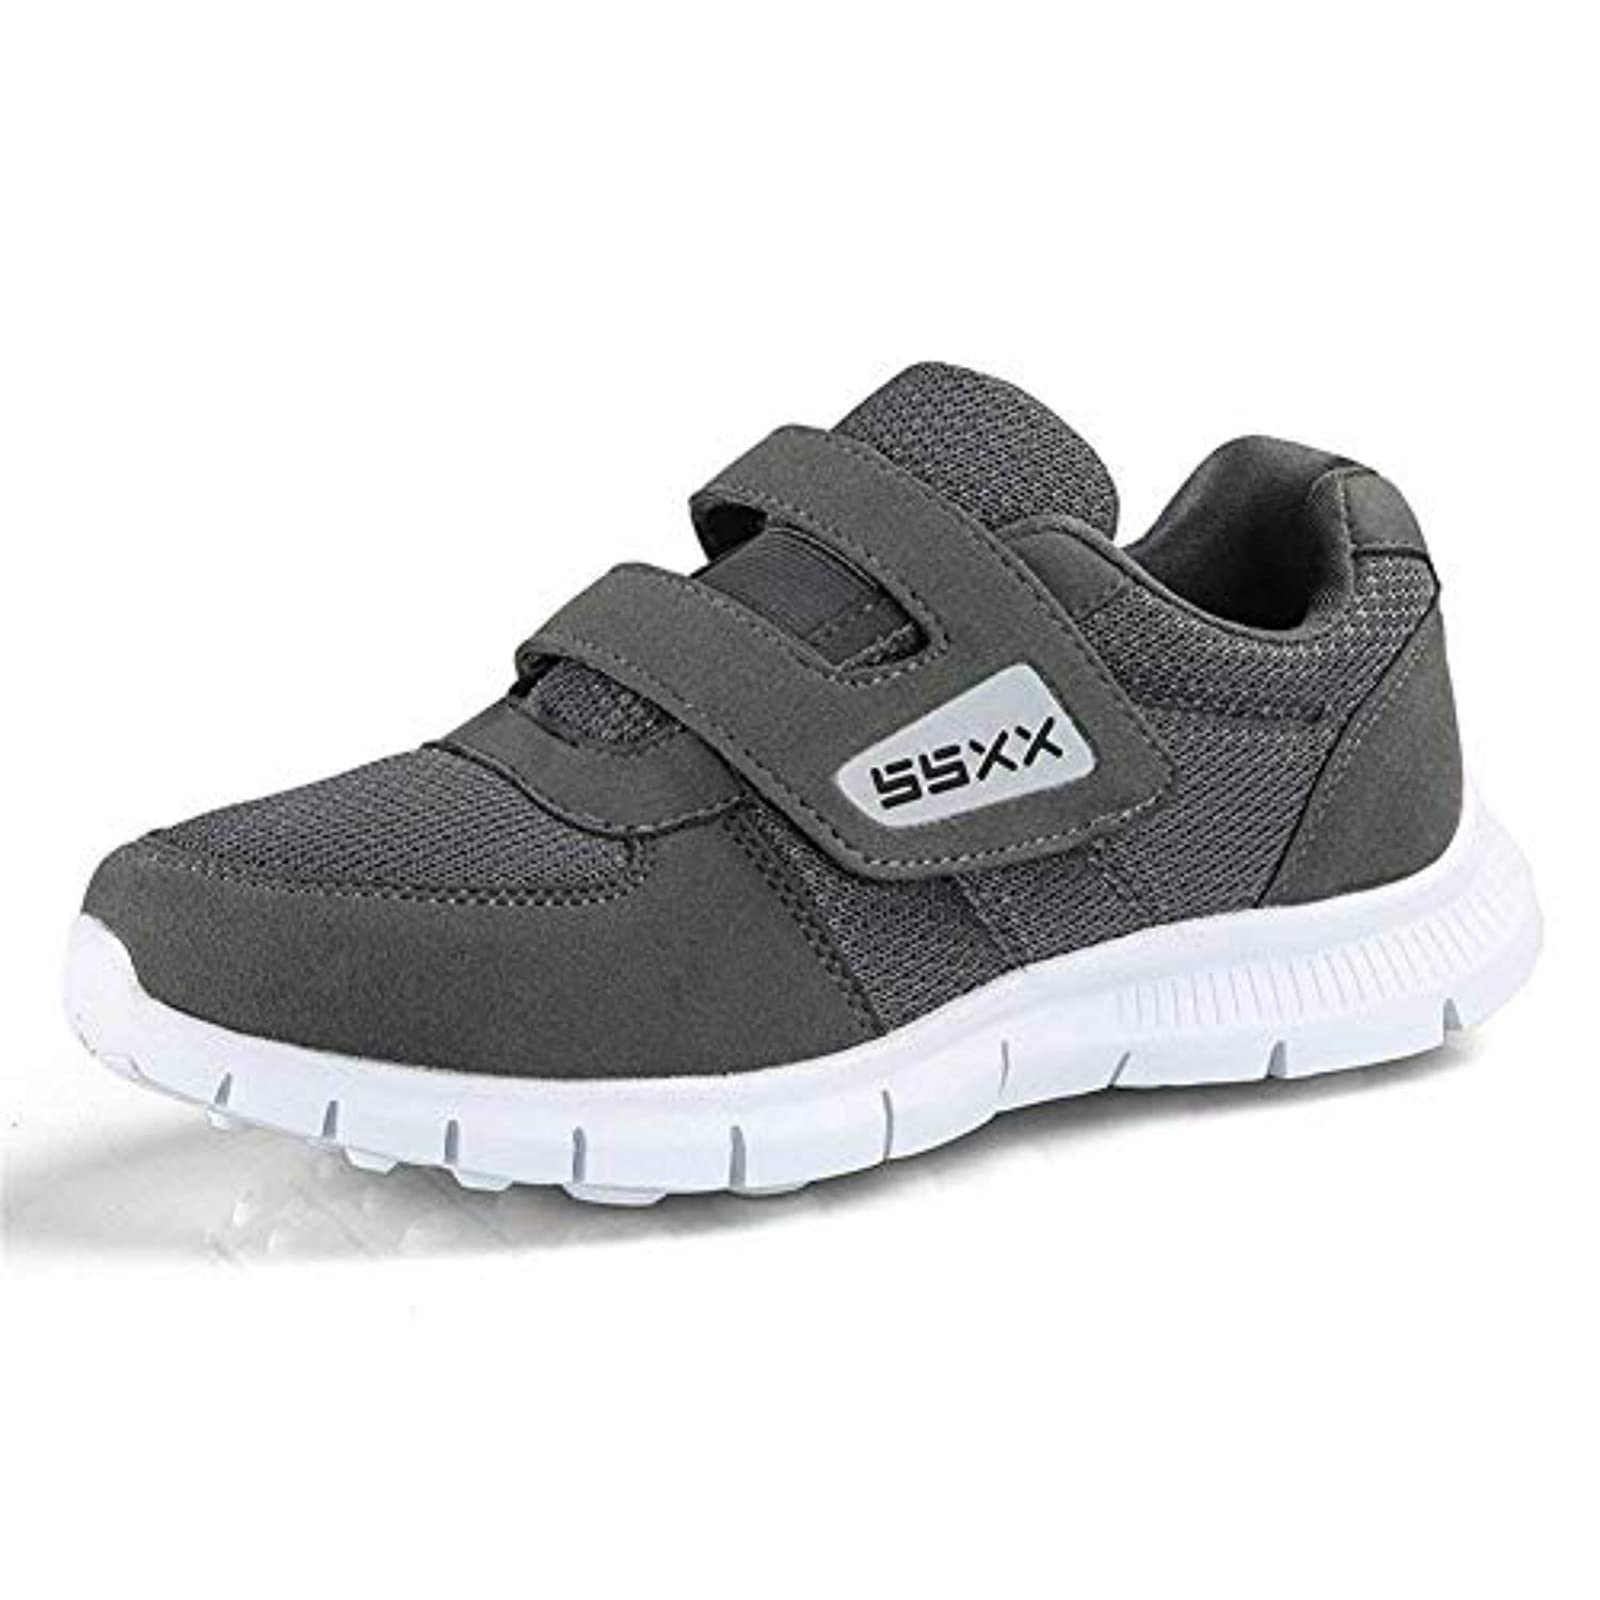 Fires Men's Casual Sneakers Lightweight Athletic - 7